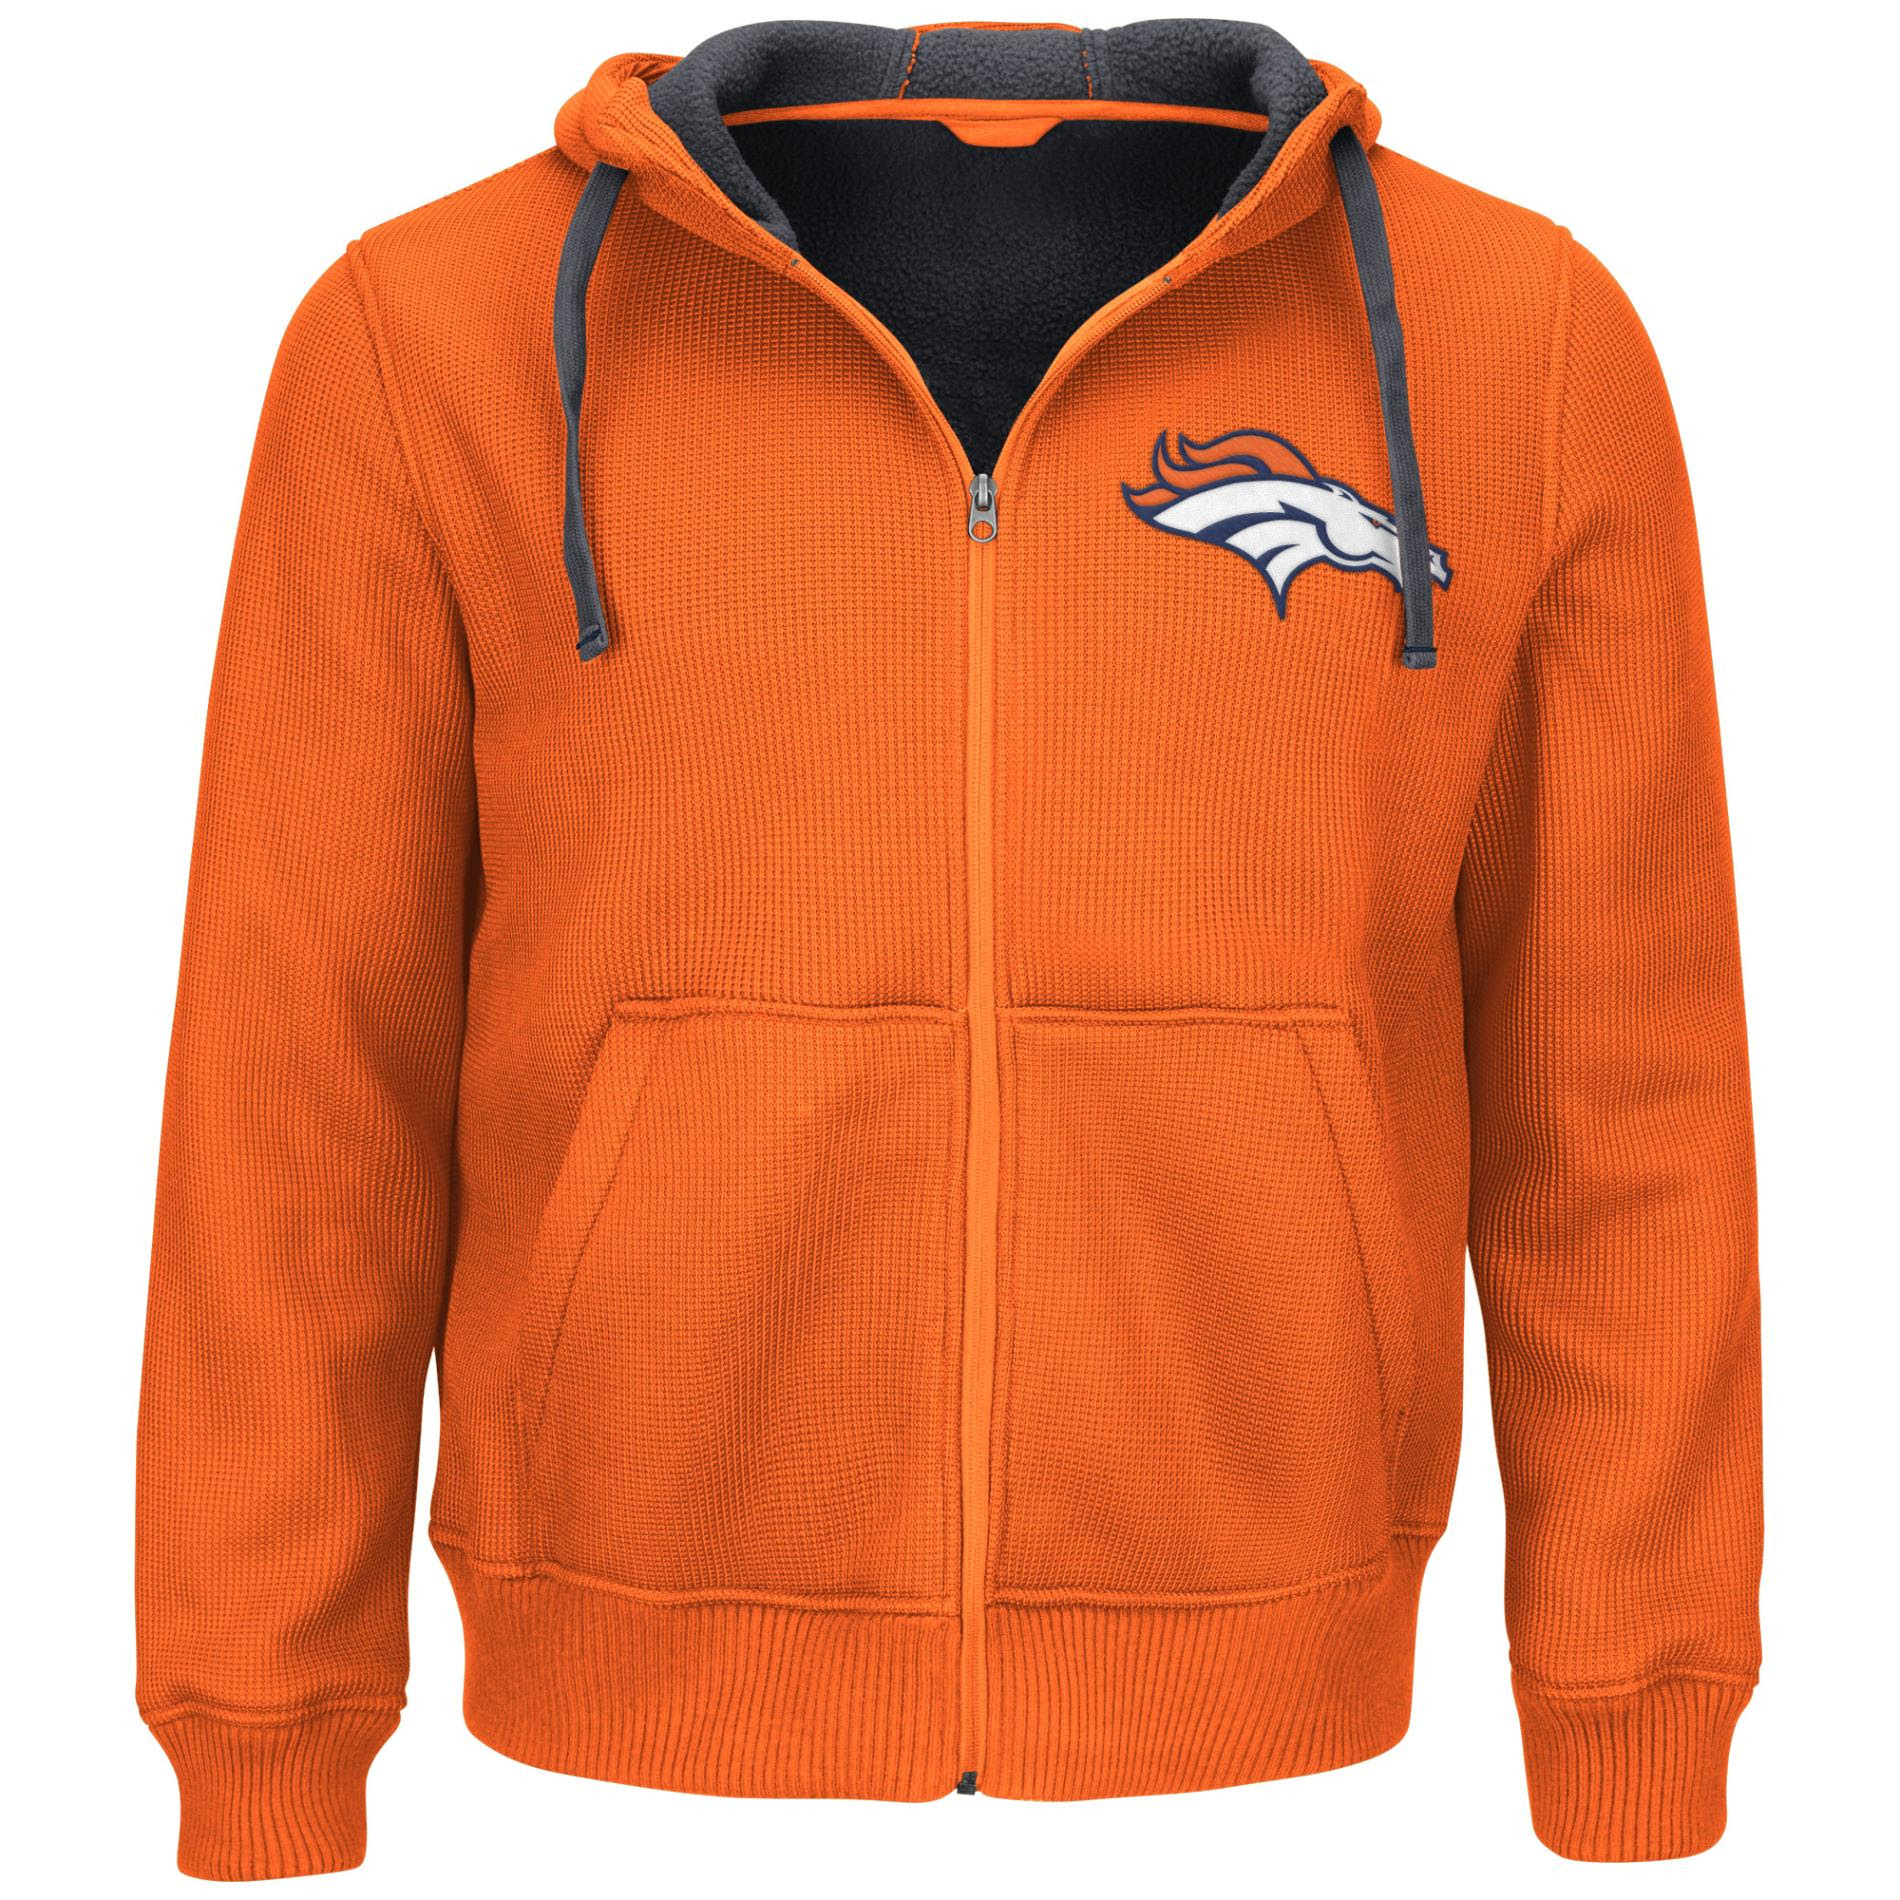 NFL Mens Thermal Hoodie Jacket  Denver Broncos